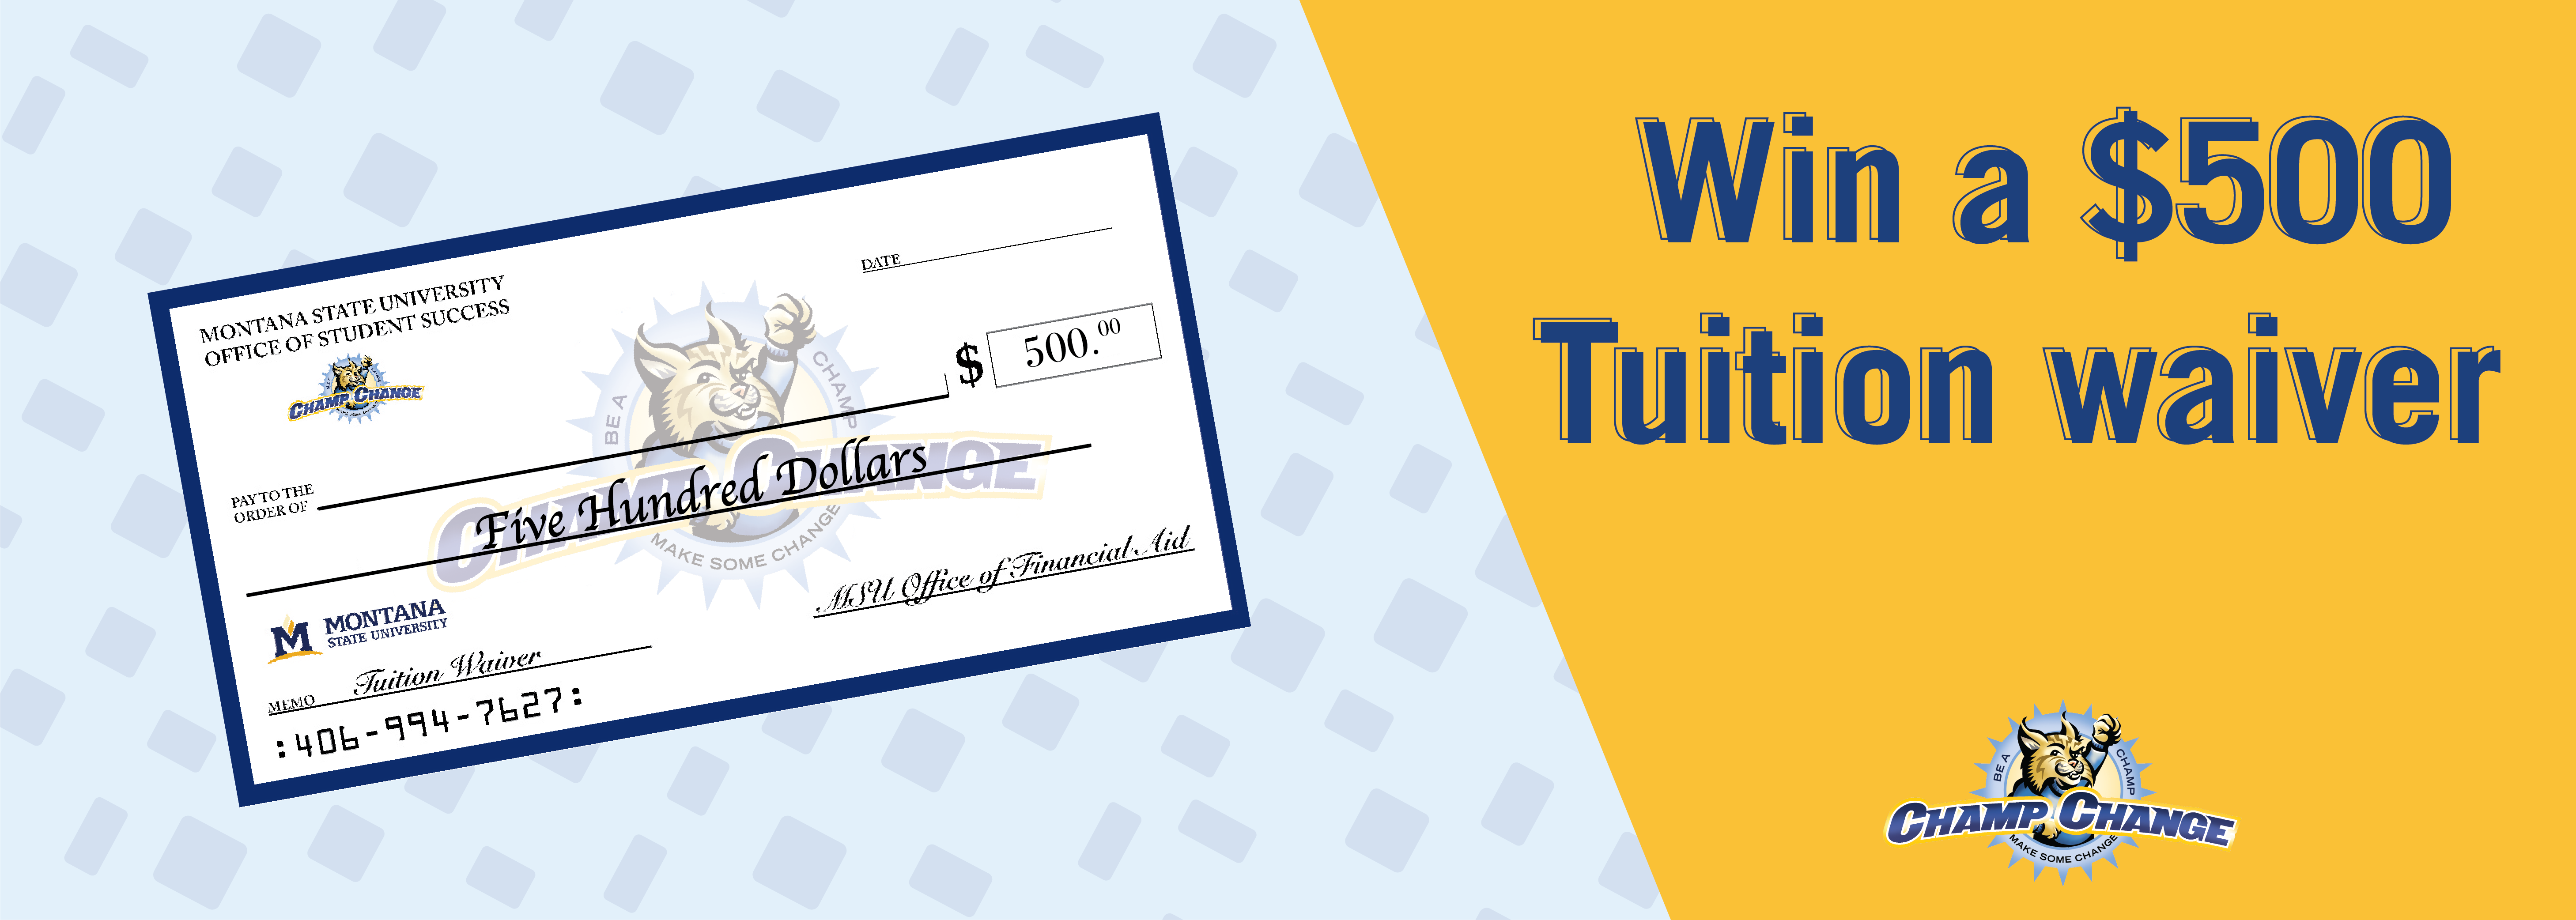 Win a $500 Tuition Waiver